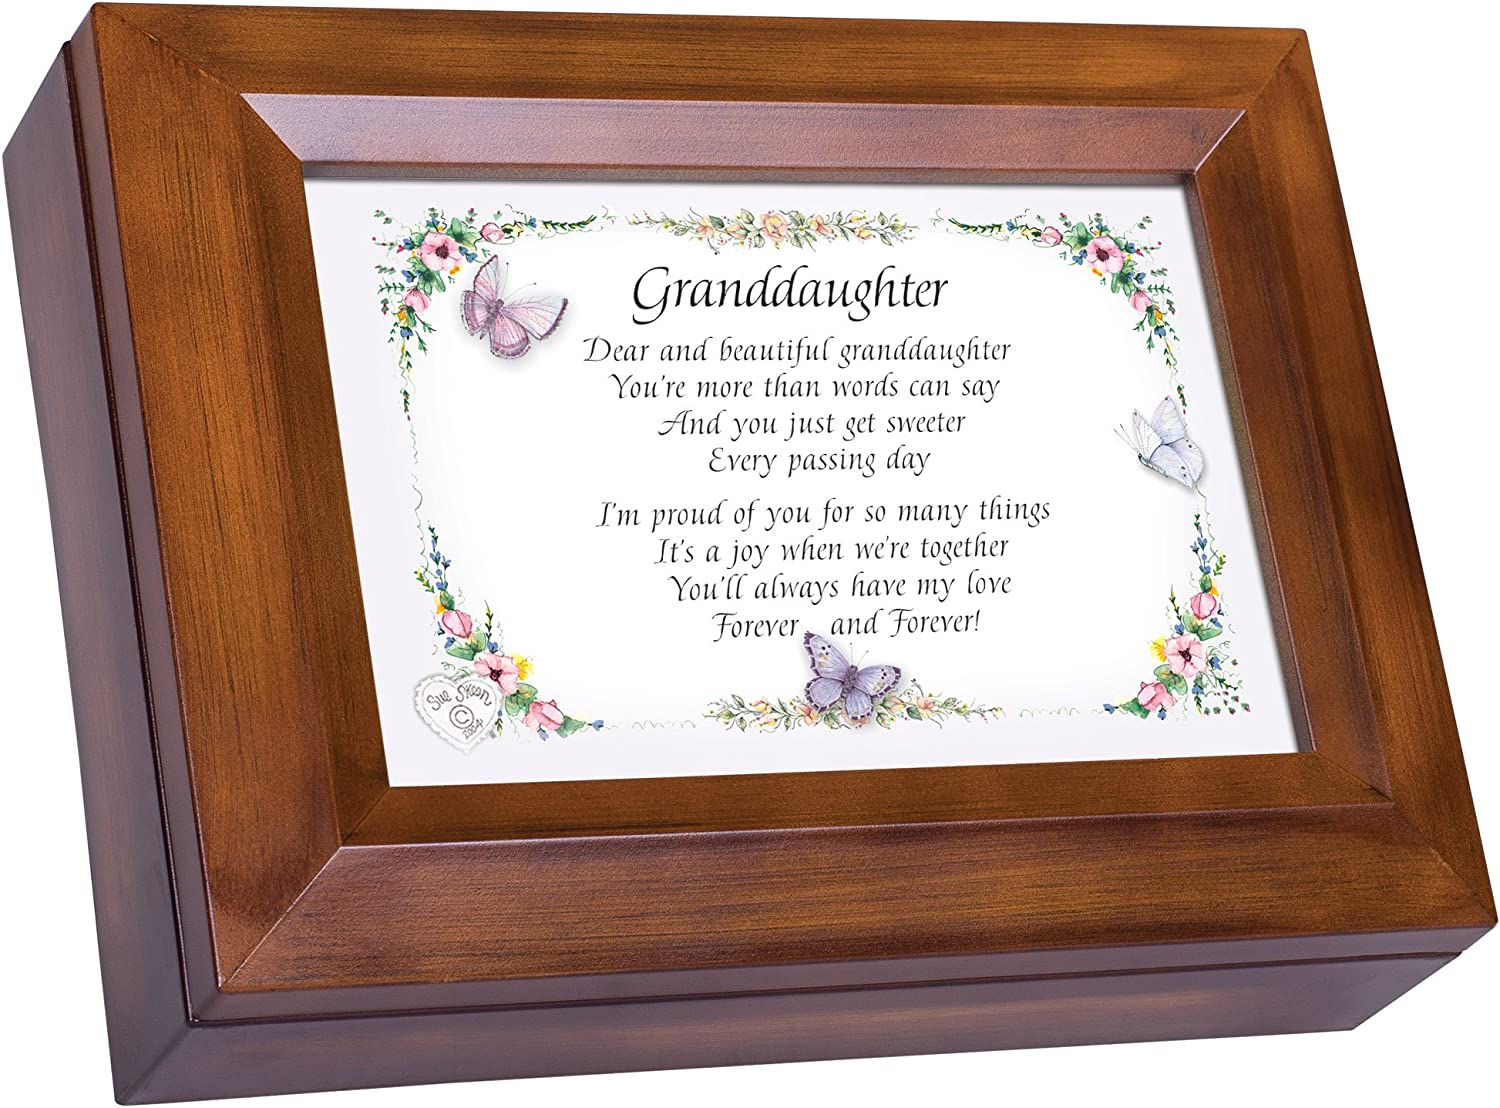 Cottage Garden Granddaughter Proud of You Woodgrain Digital Keepsake Music Box Plays My Wish